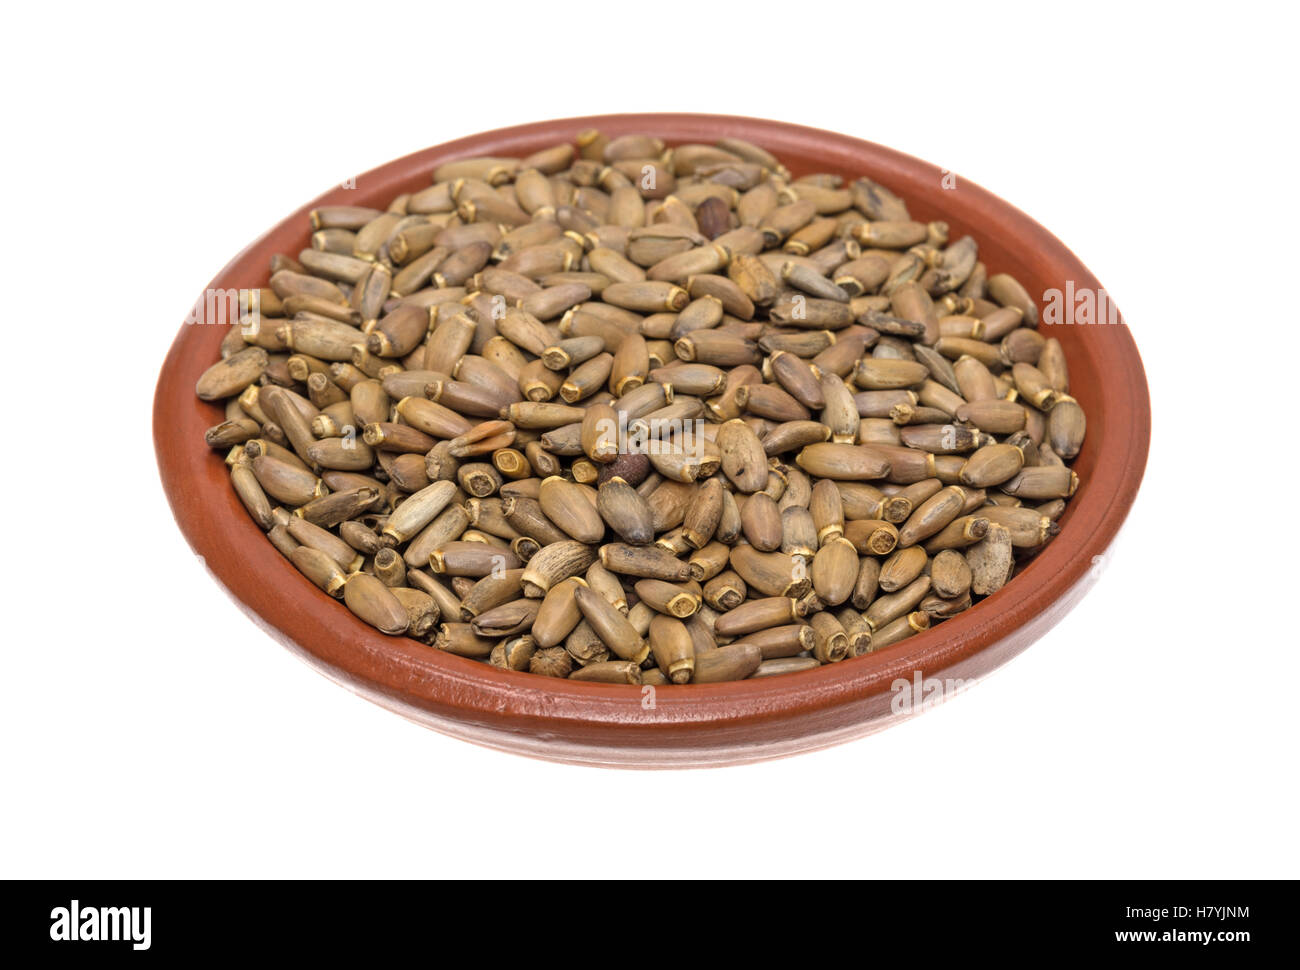 A small bowl filled with organic milk thistle seeds isolated on a white background. - Stock Image